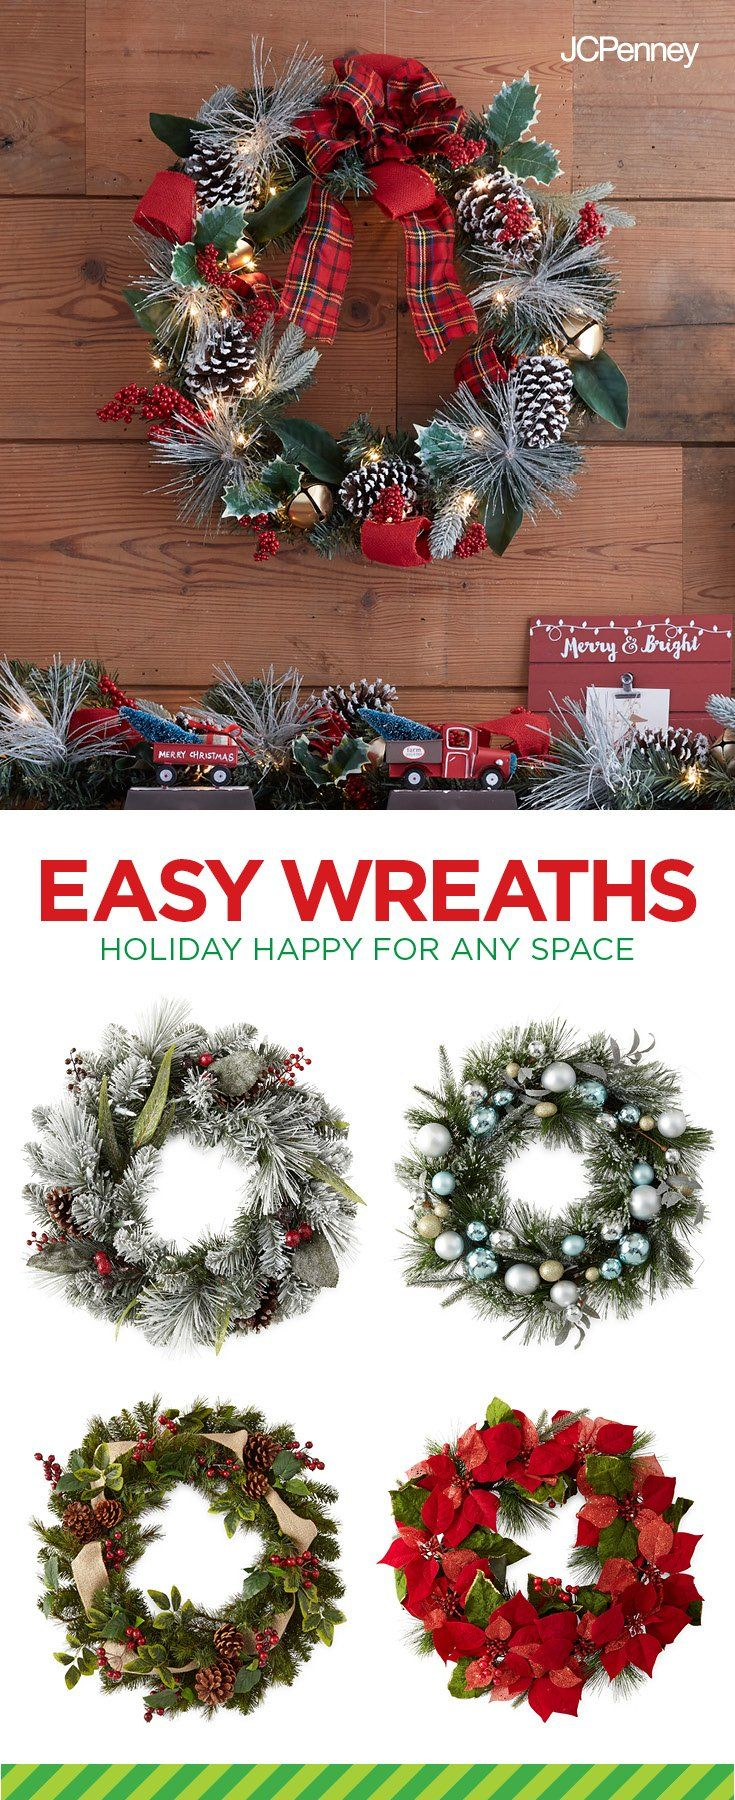 garlands wreaths holiday decor for the home jcpenney